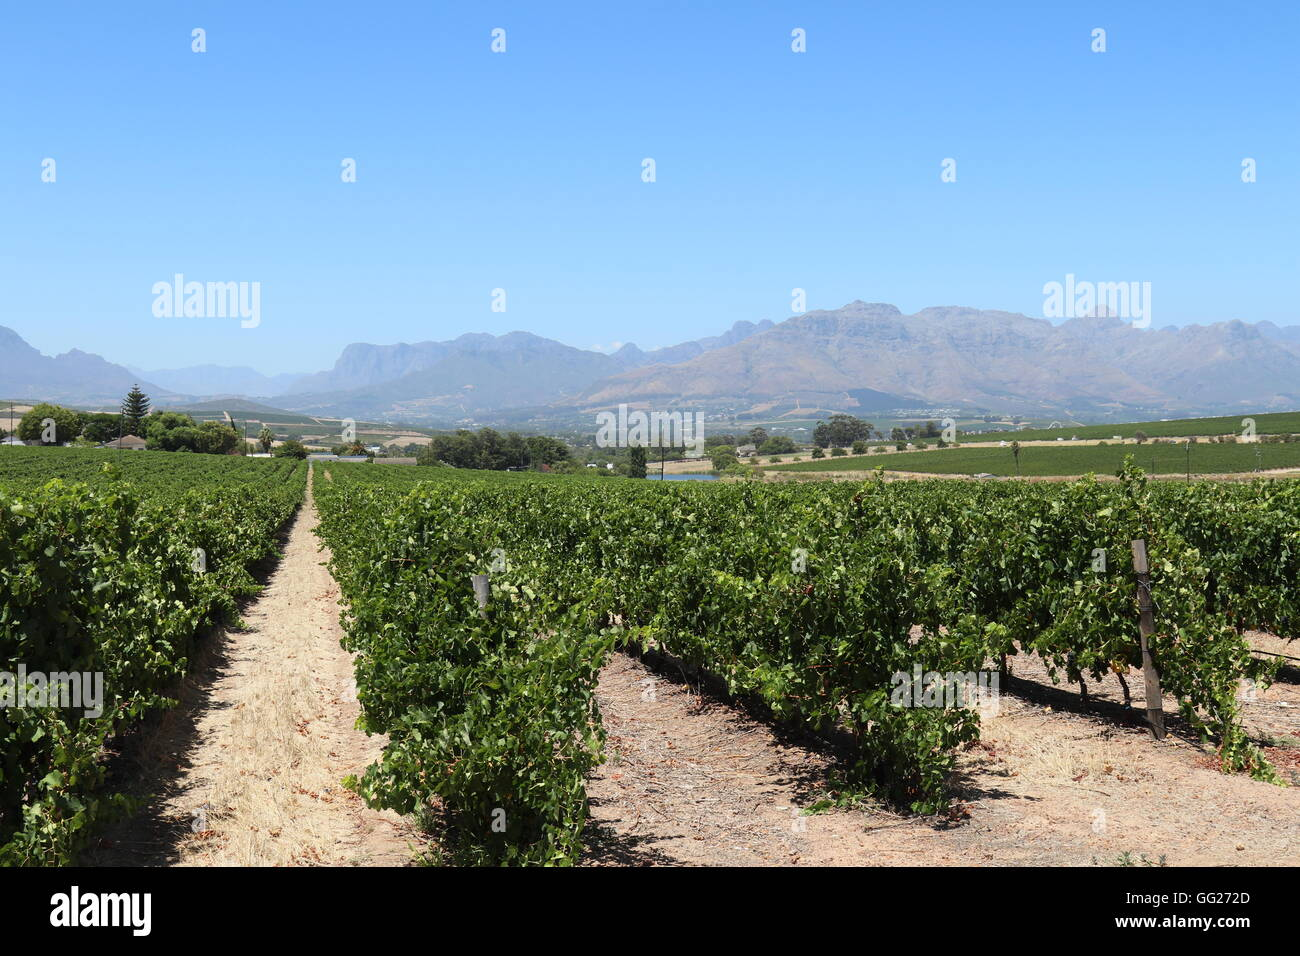 Rows of grapevines at a vineyard with mountains in the background at Mulderbosch Wines, Stellenbosch, South Africa Stock Photo